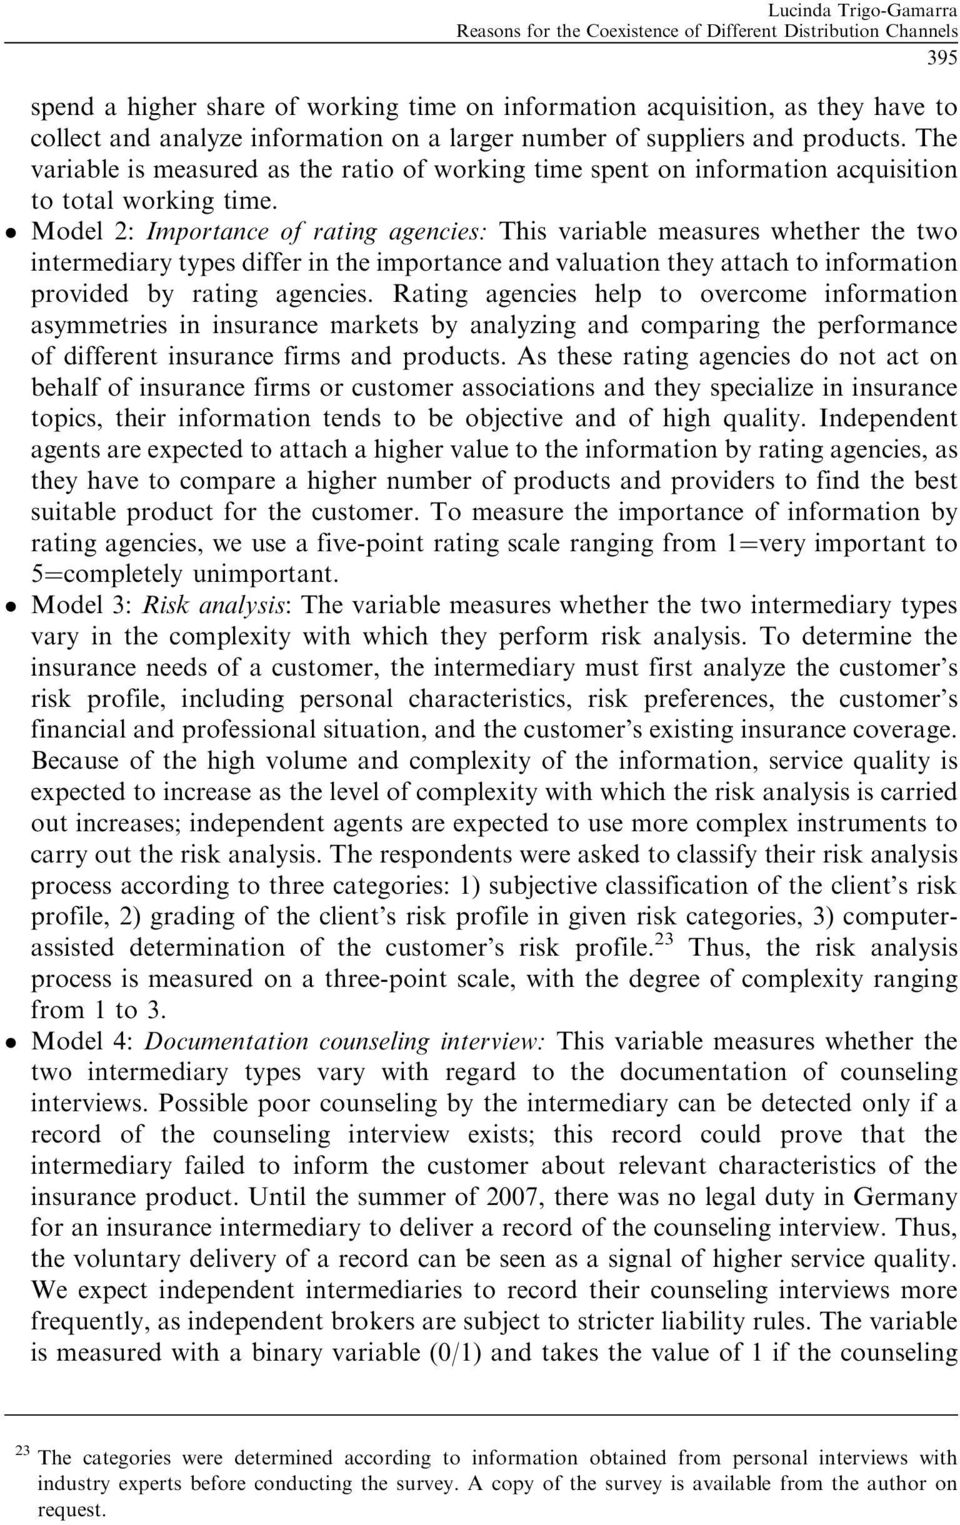 Model 2: Importance of rating agencies: This variable measures whether the two intermediary types differ in the importance and valuation they attach to information provided by rating agencies.